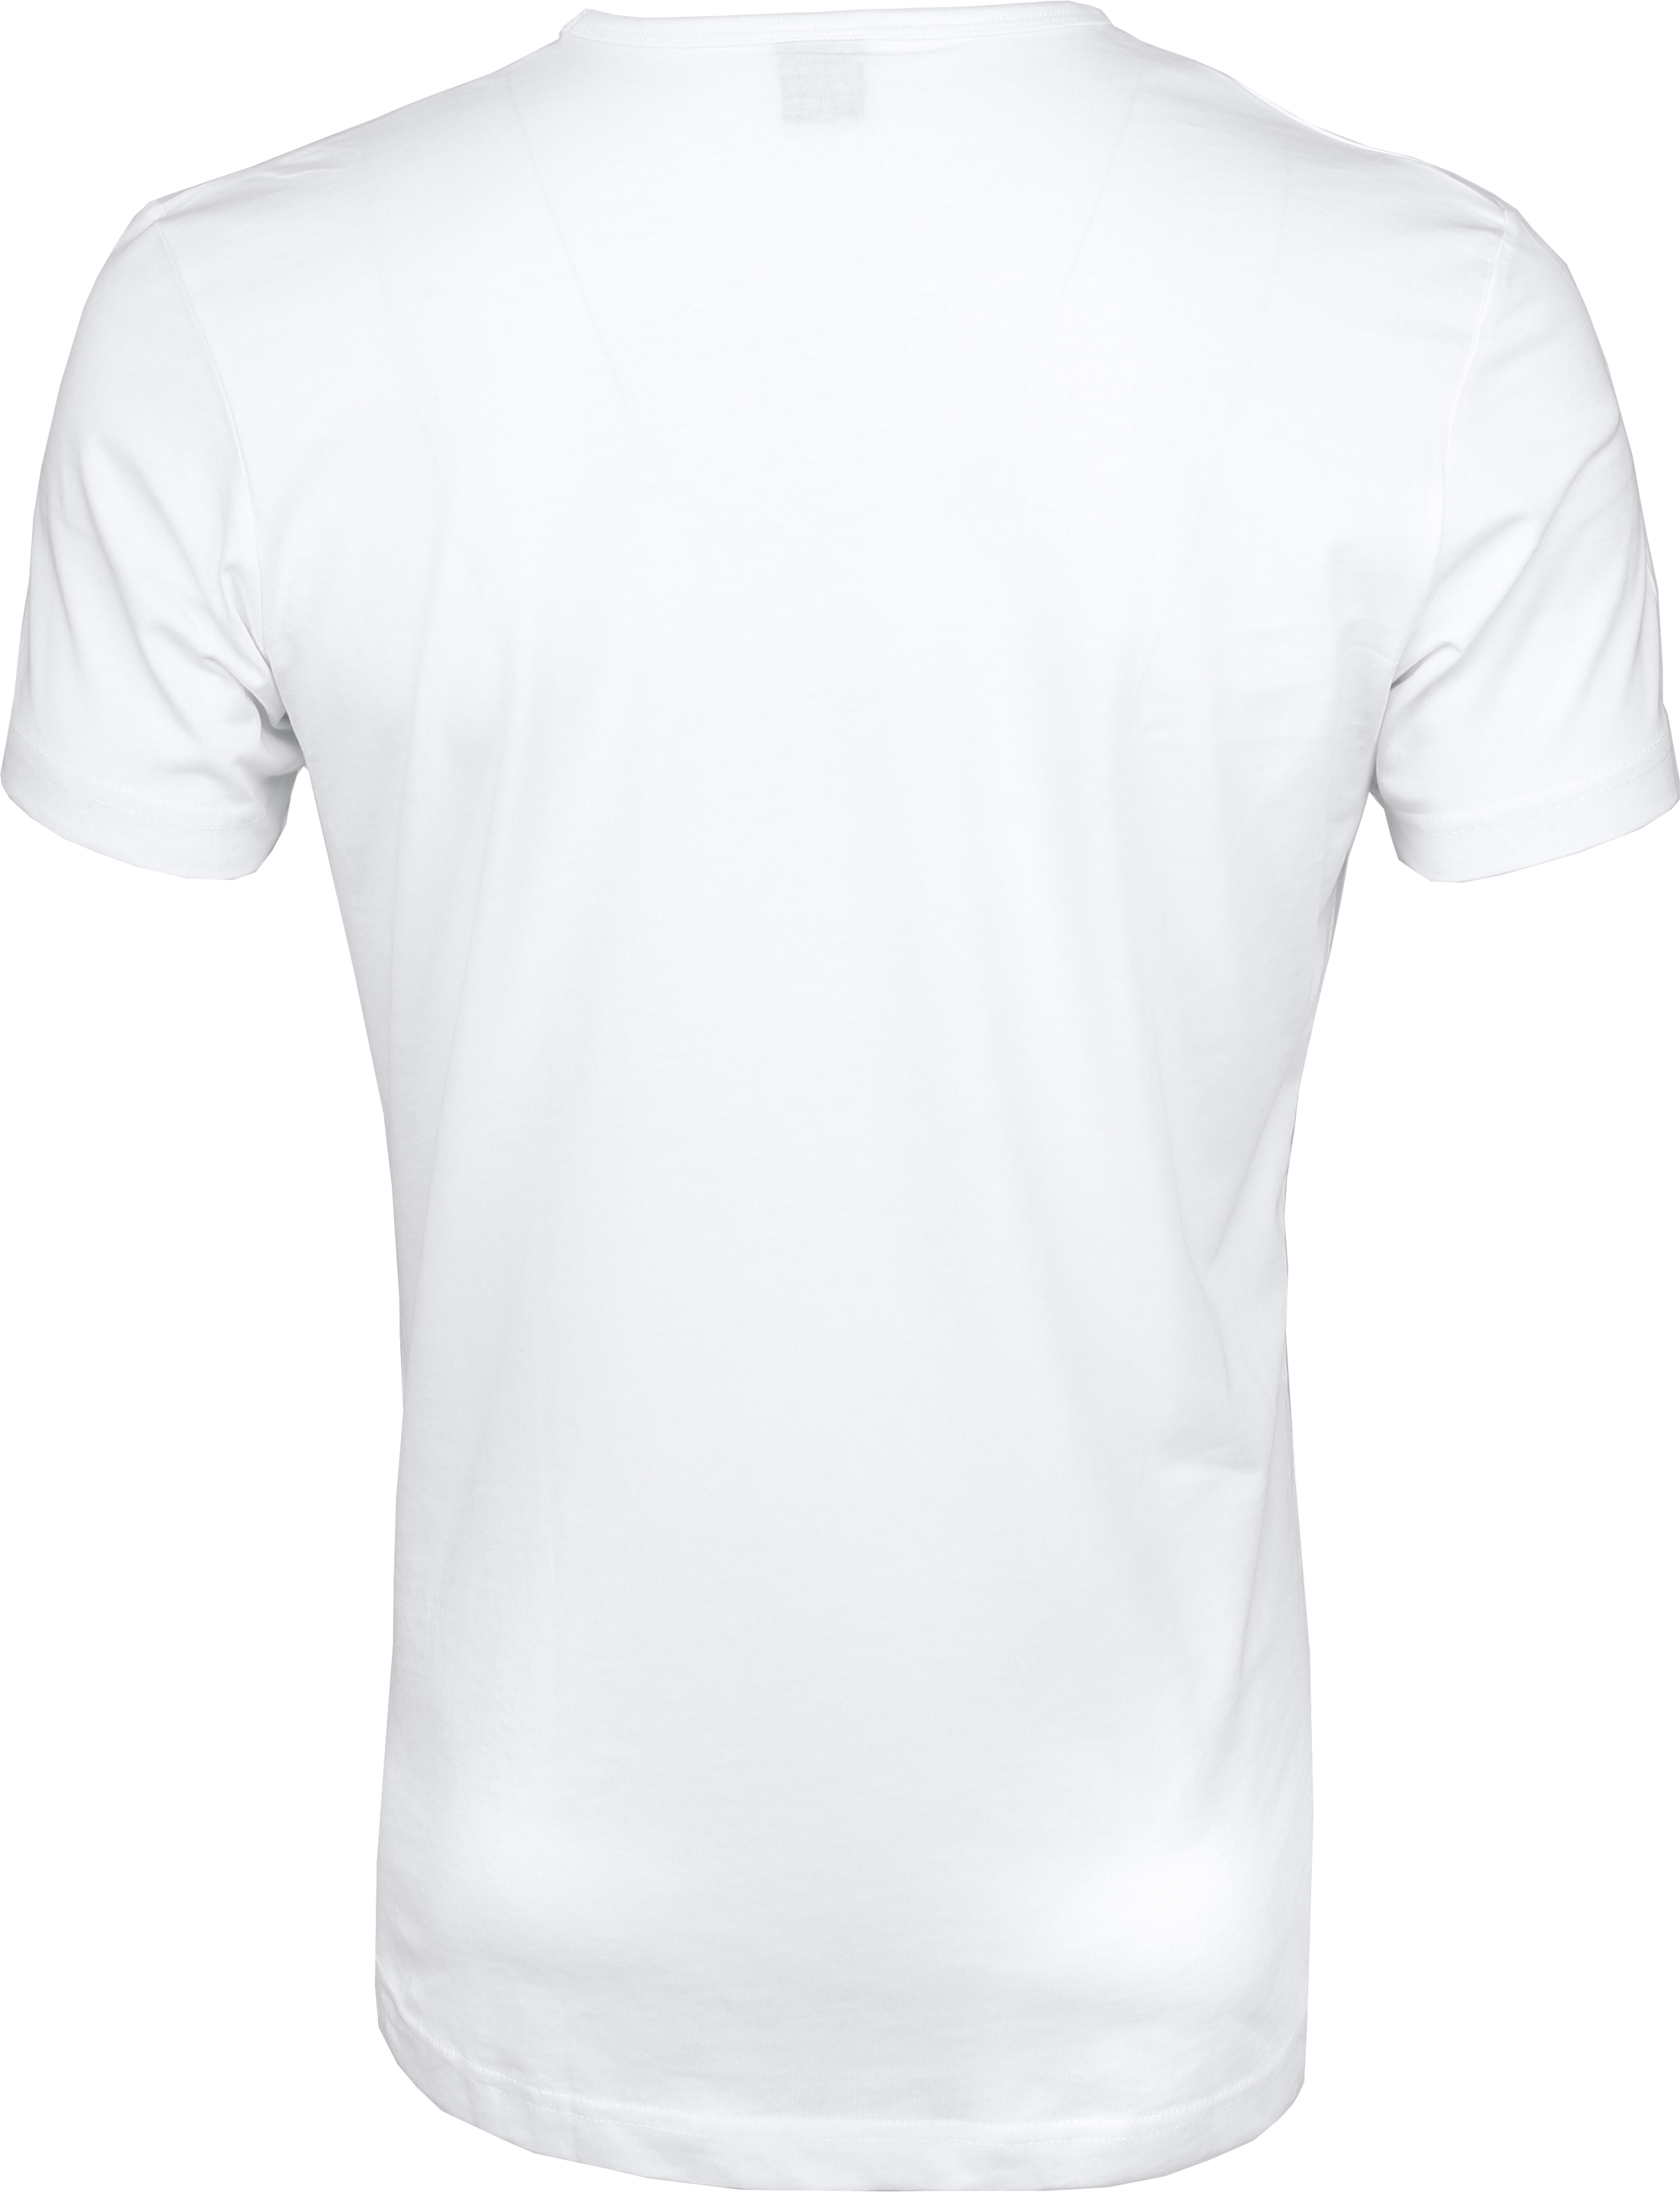 Suitable T-shirt 2-Pack O-Neck White foto 4